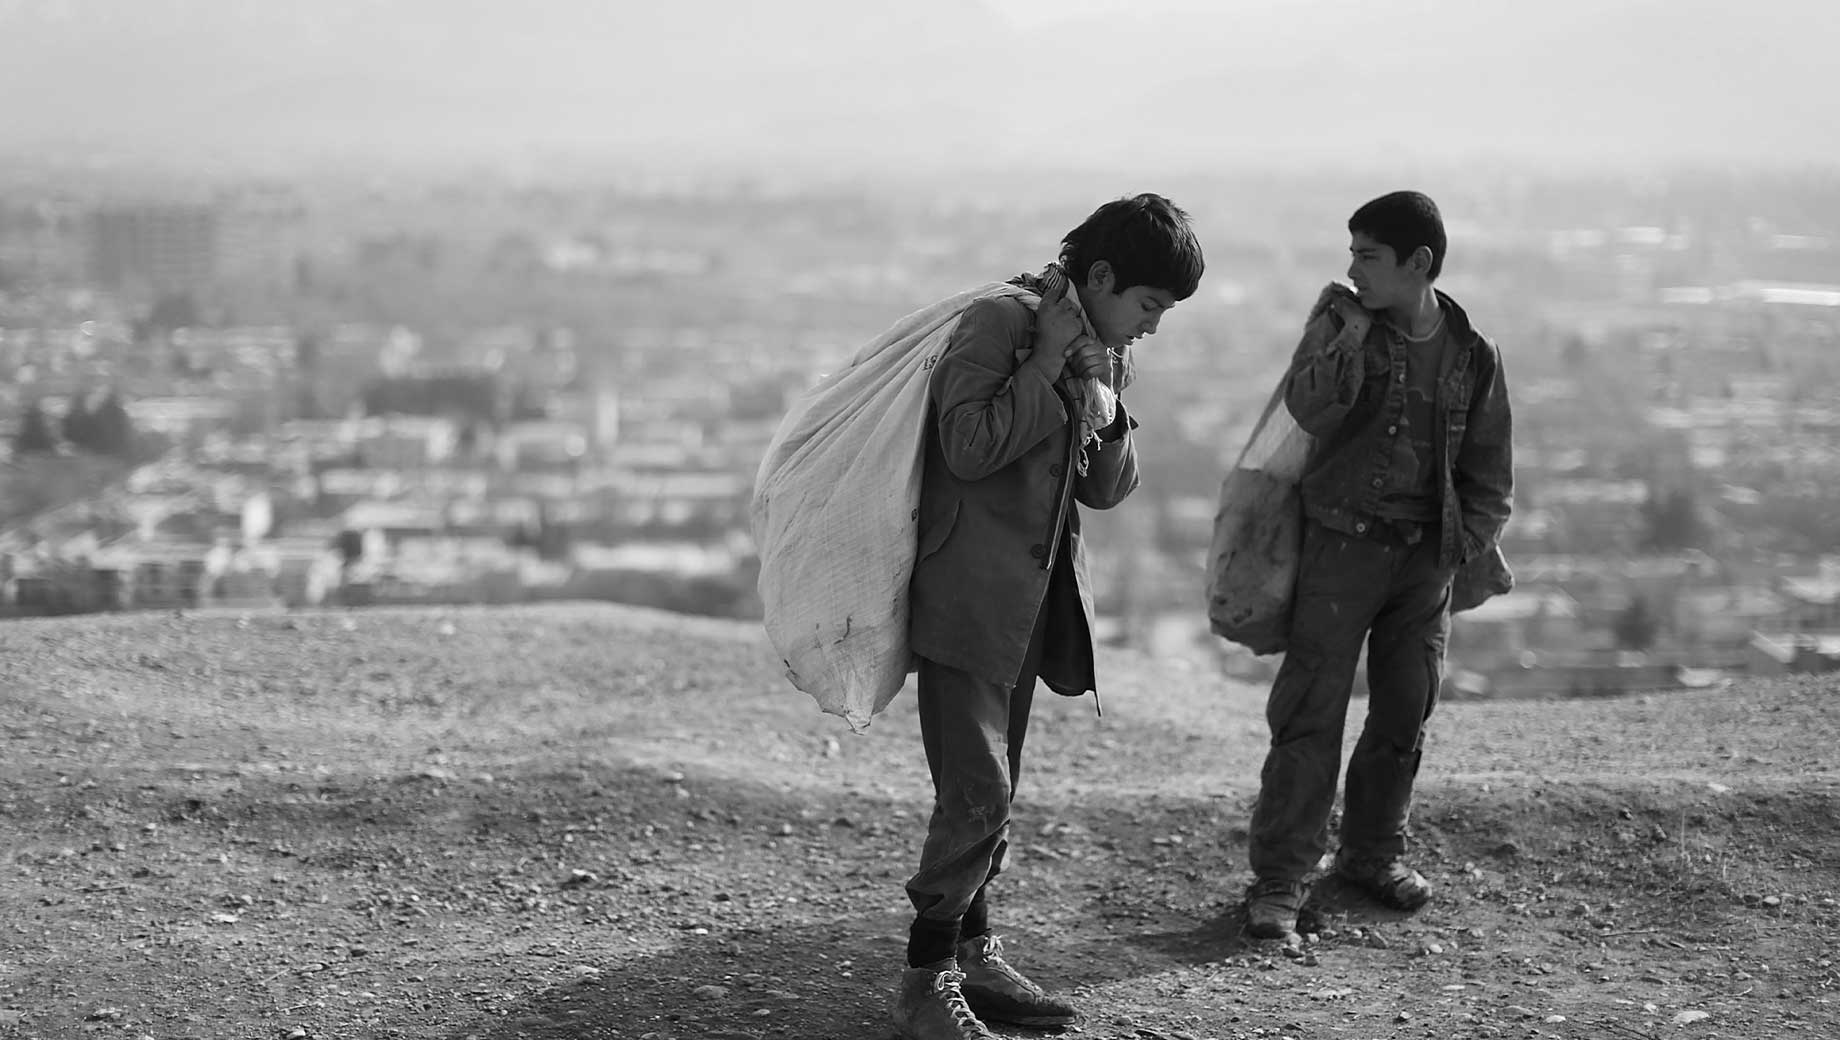 Inside Afghanistan: Nearly Nine in 10 Afghans Are Suffering